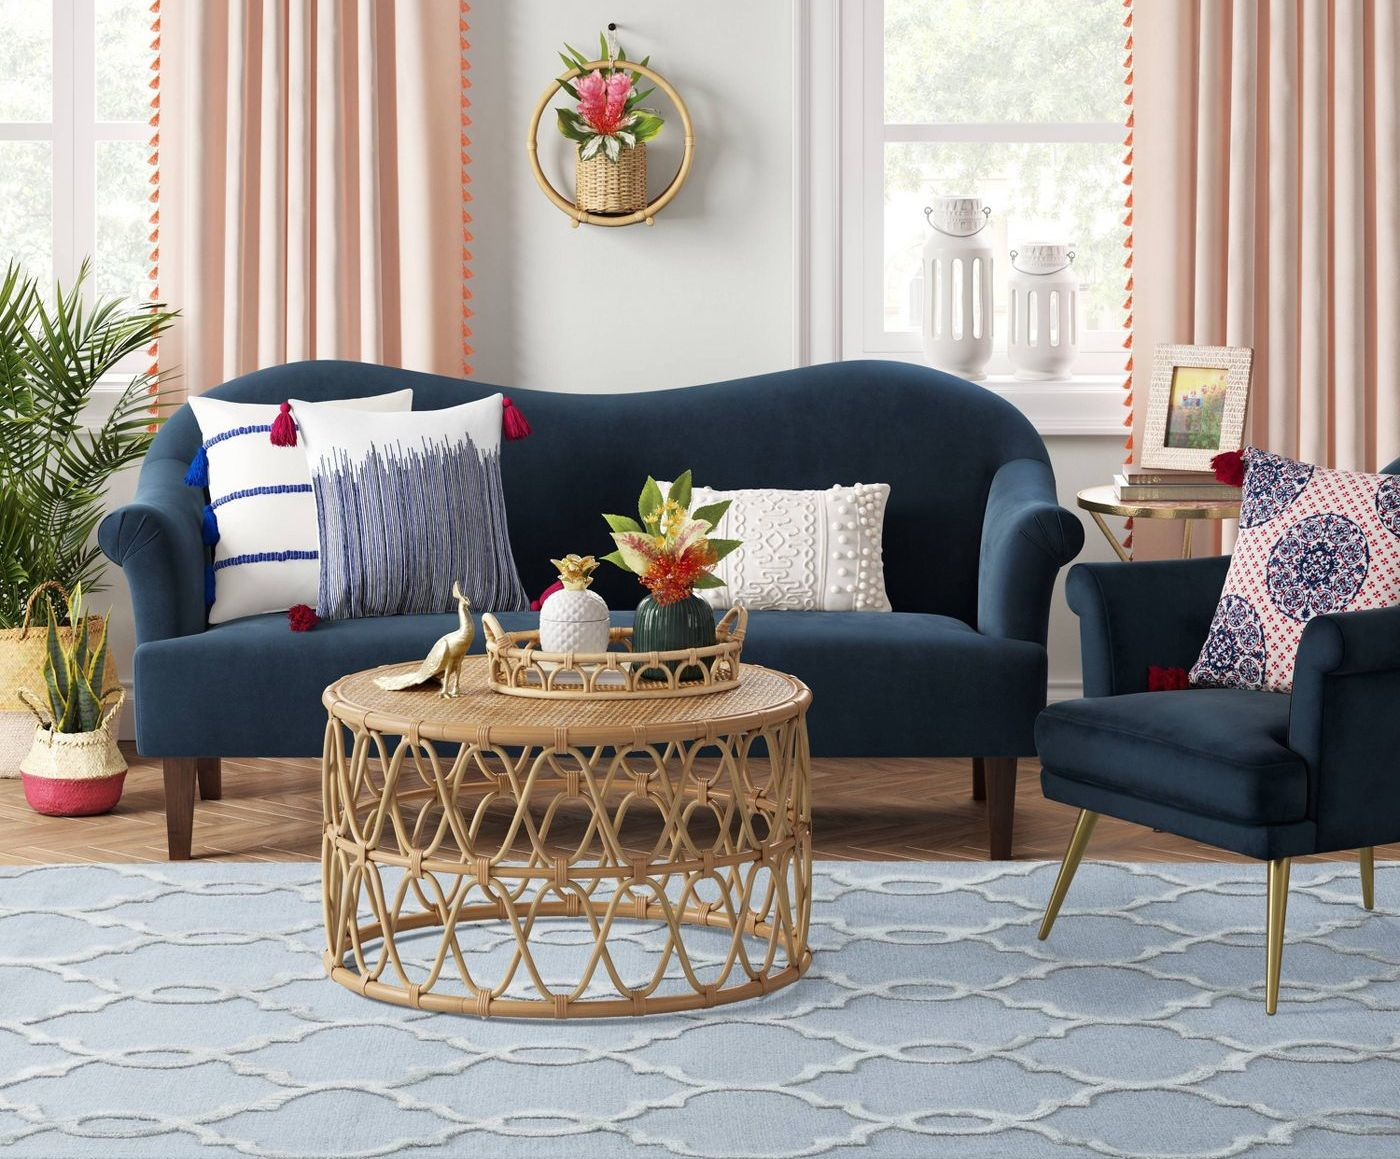 A living area with a patterned area rug, wicker table, chair, couch, and windows.